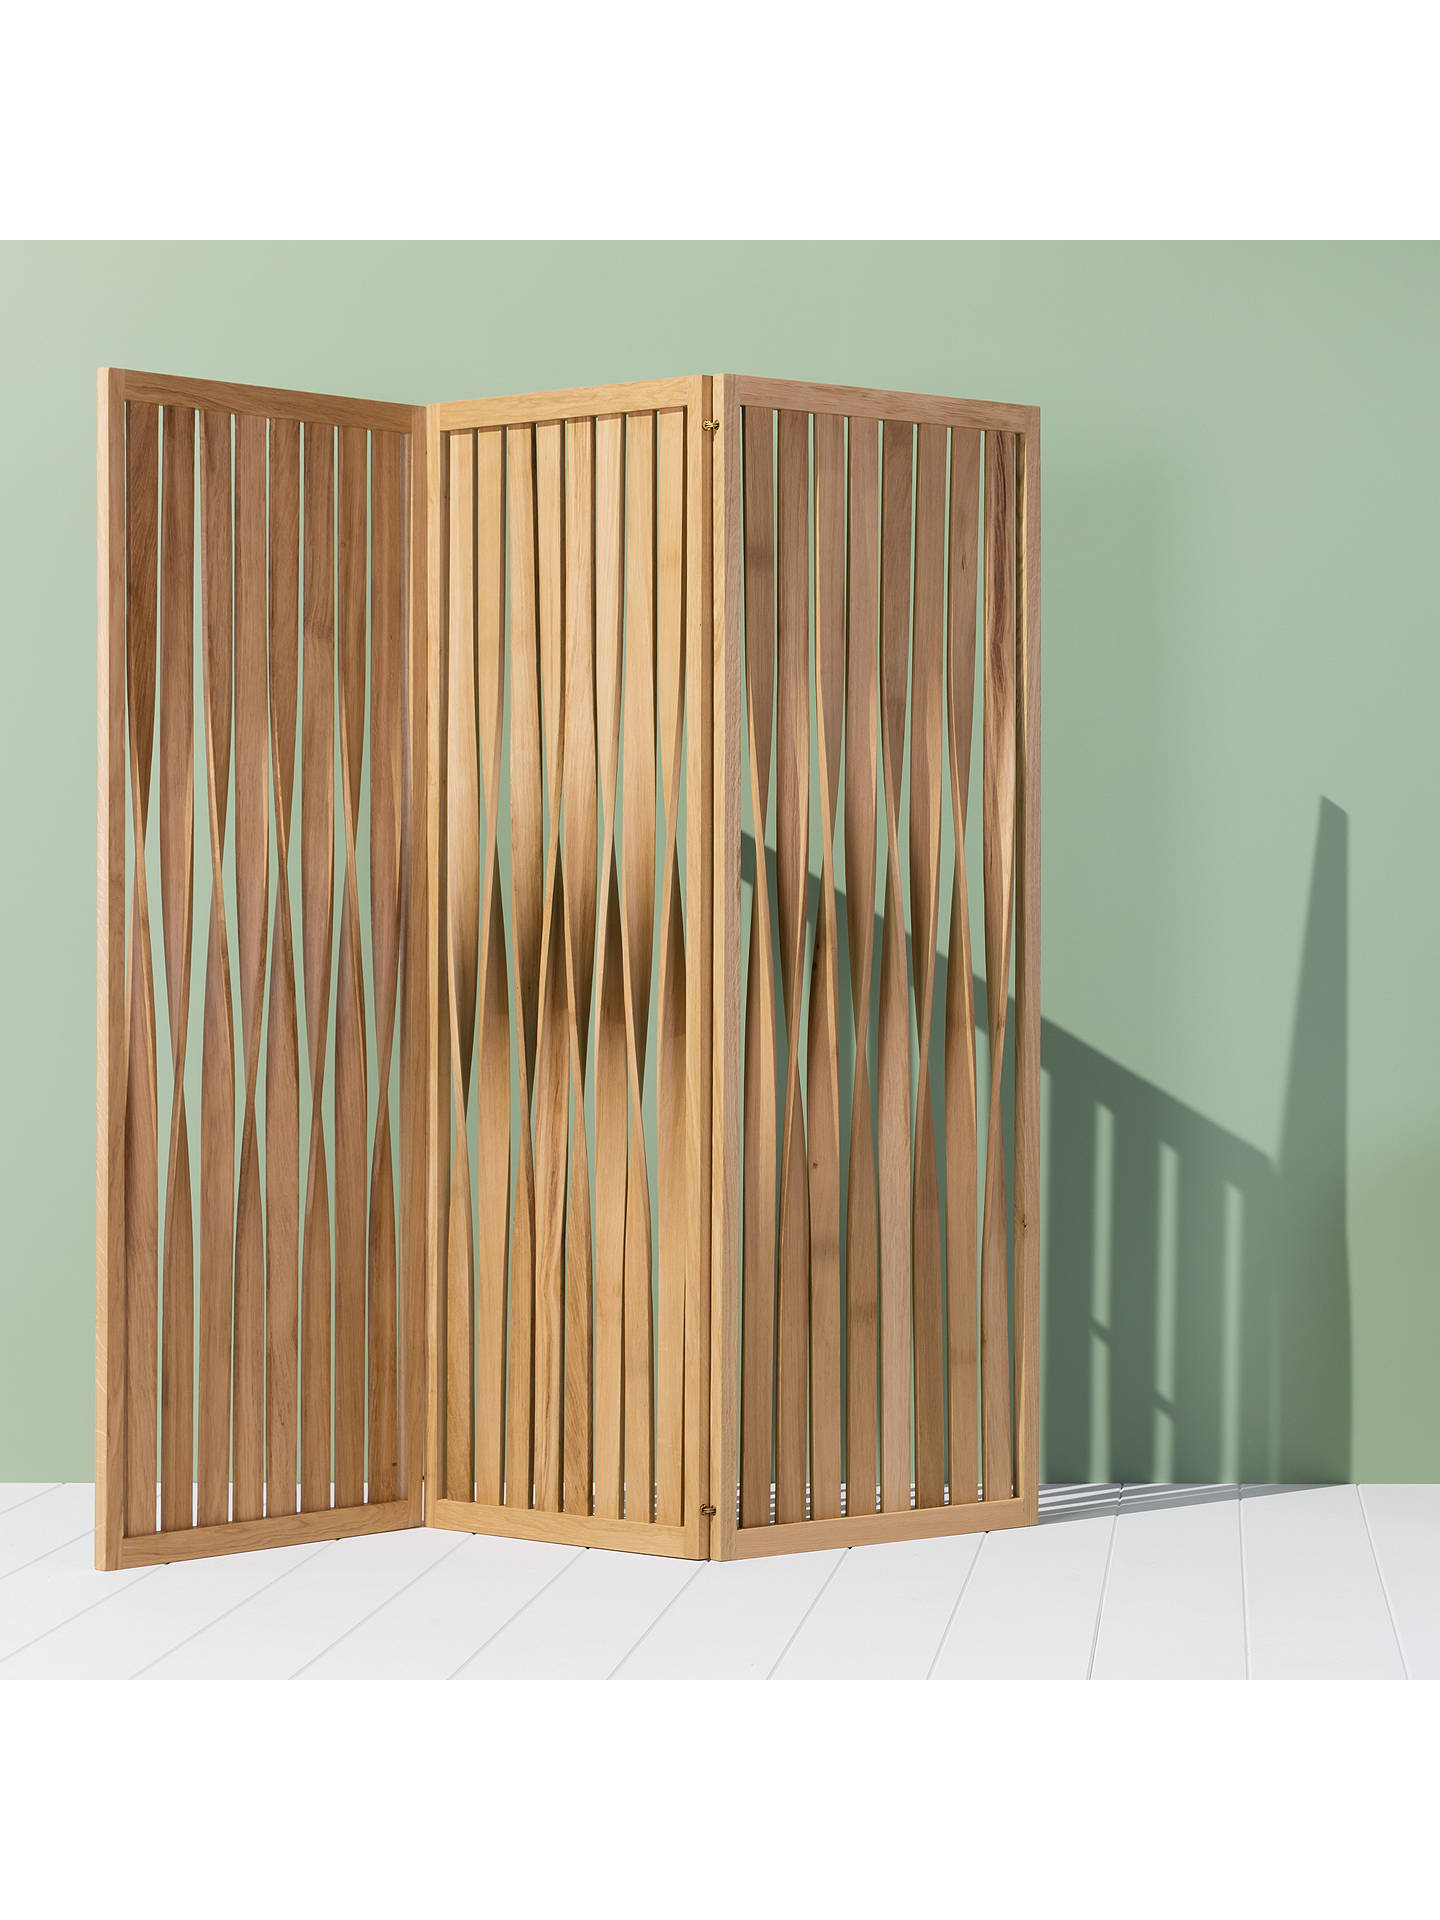 BuyTom Raffield Gwelsen Screen Online at johnlewis.com